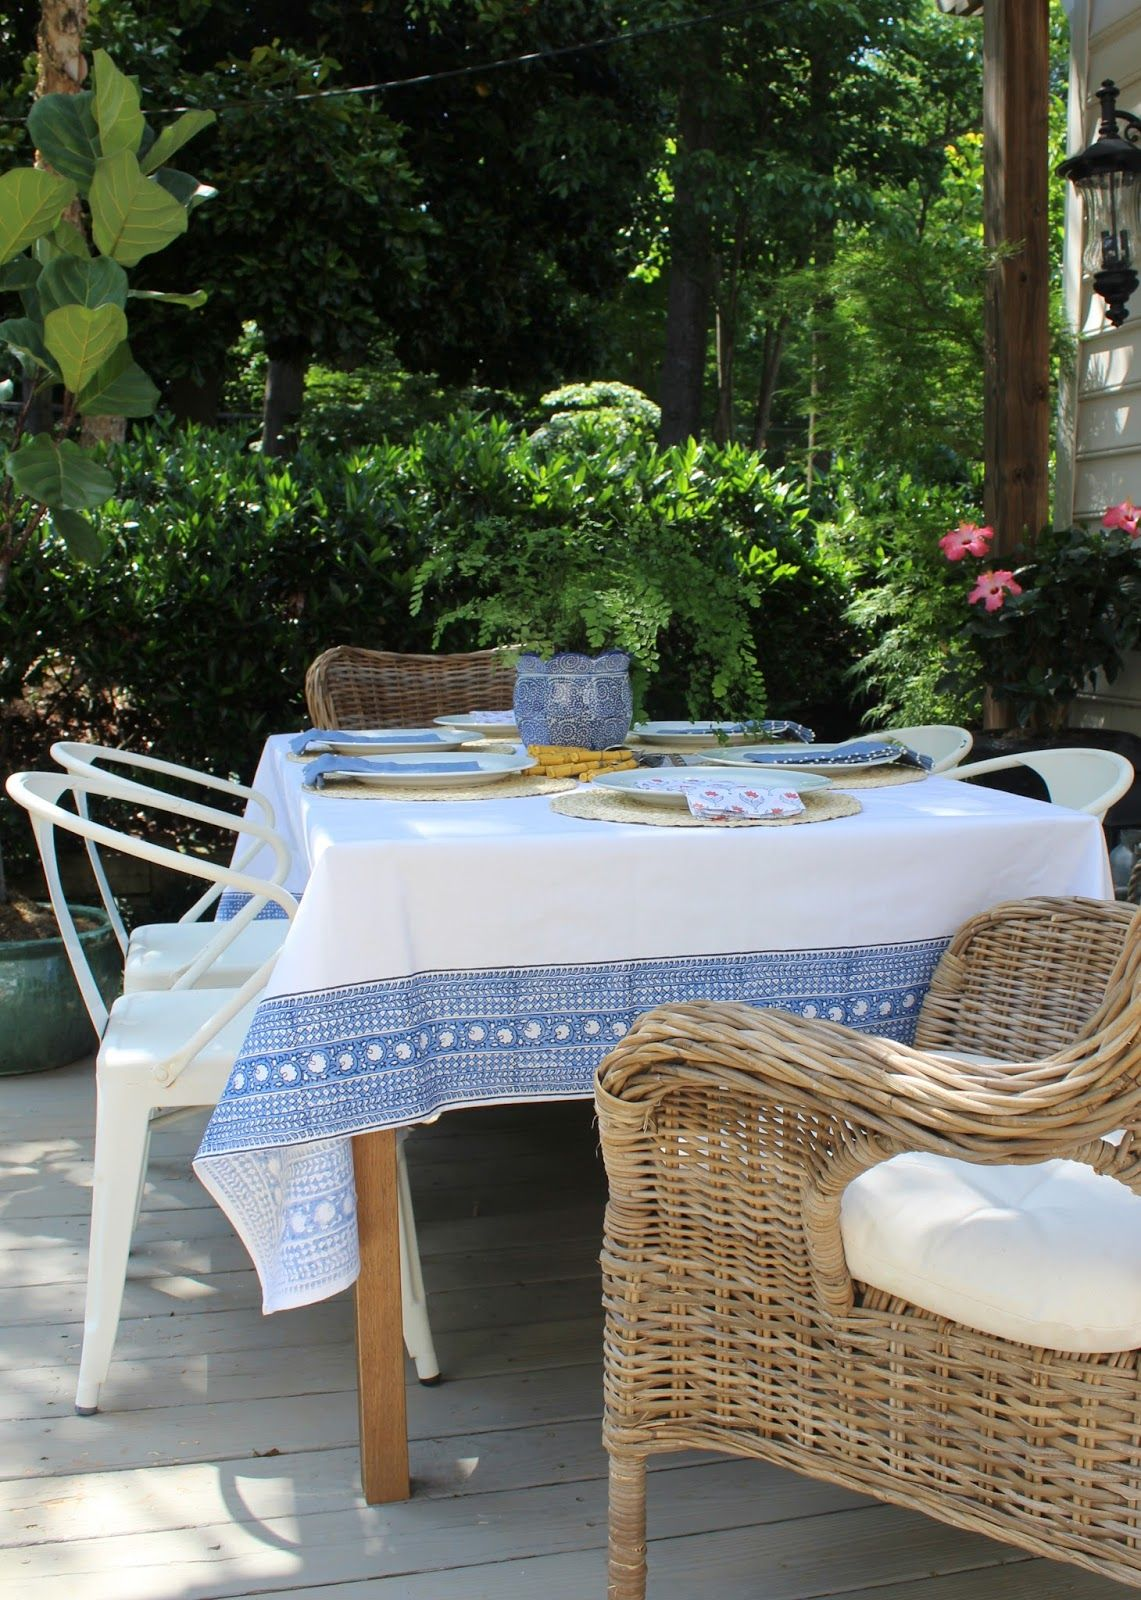 Upgrading Our Outdoor Dining Experience | Outdoor dining ...